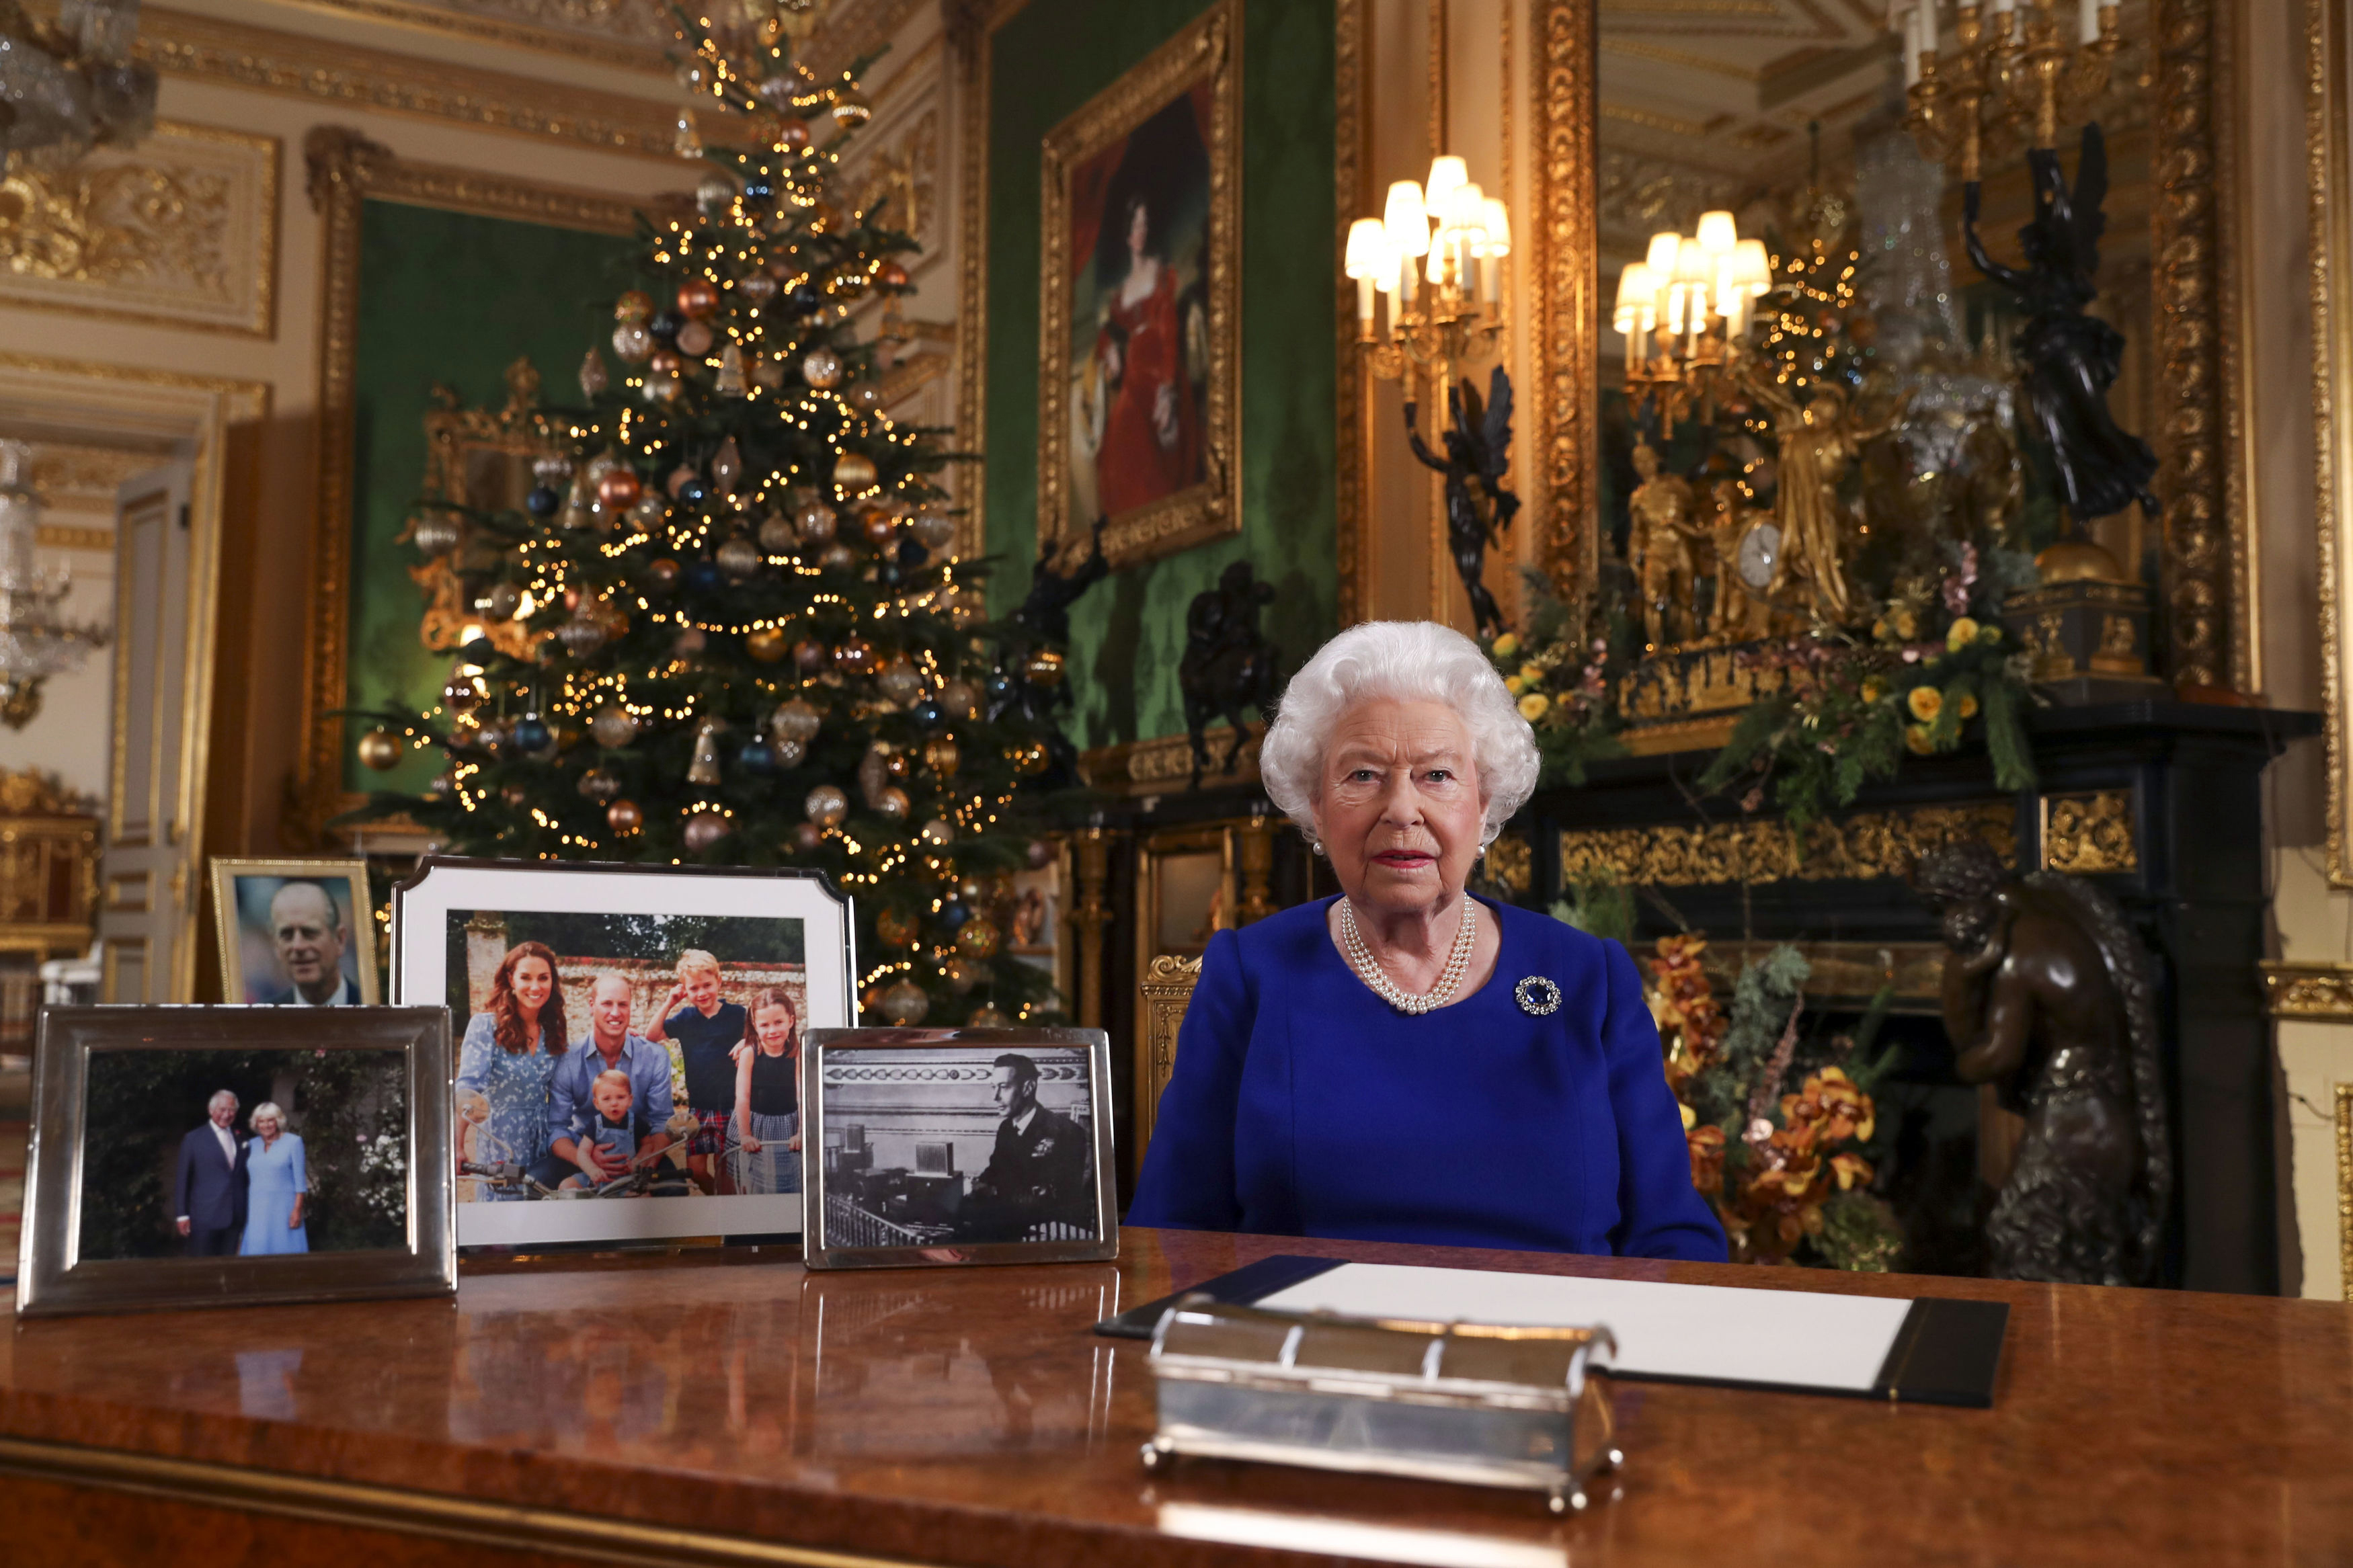 Britain's Queen Elizabeth II poses for a photo, while recording her annual Christmas Day message at Windsor Castle, England in this image released on Dec. 24, 2019.